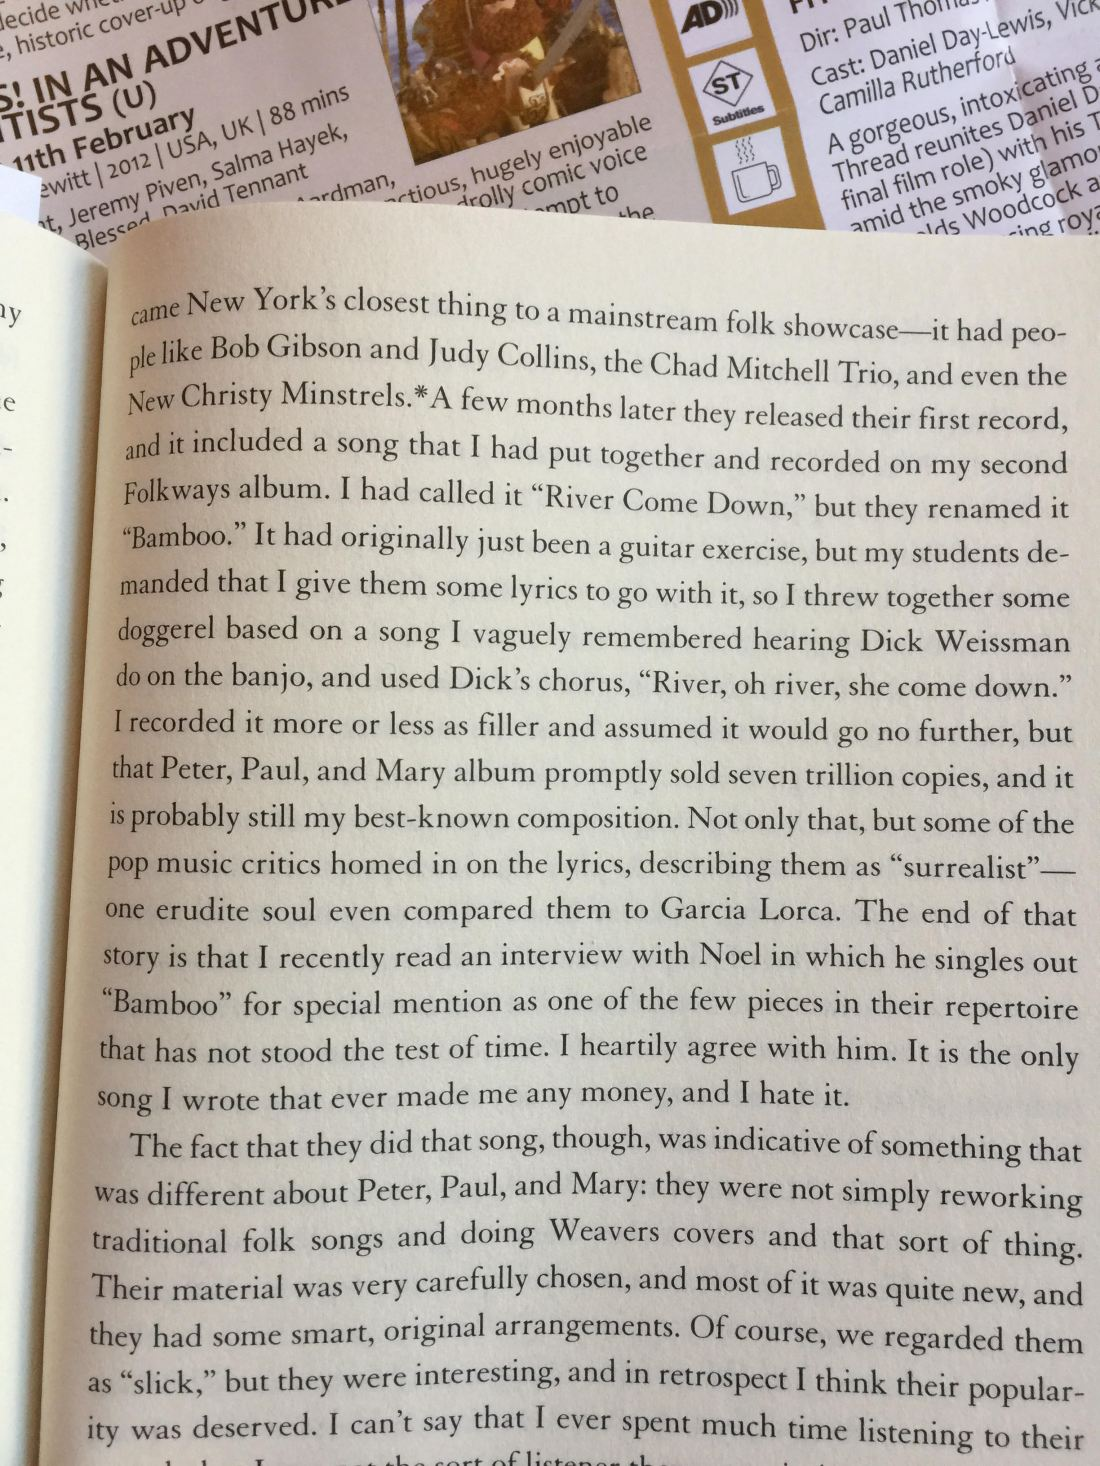 Page from Dave van Ronk's autobiography (click to expand)